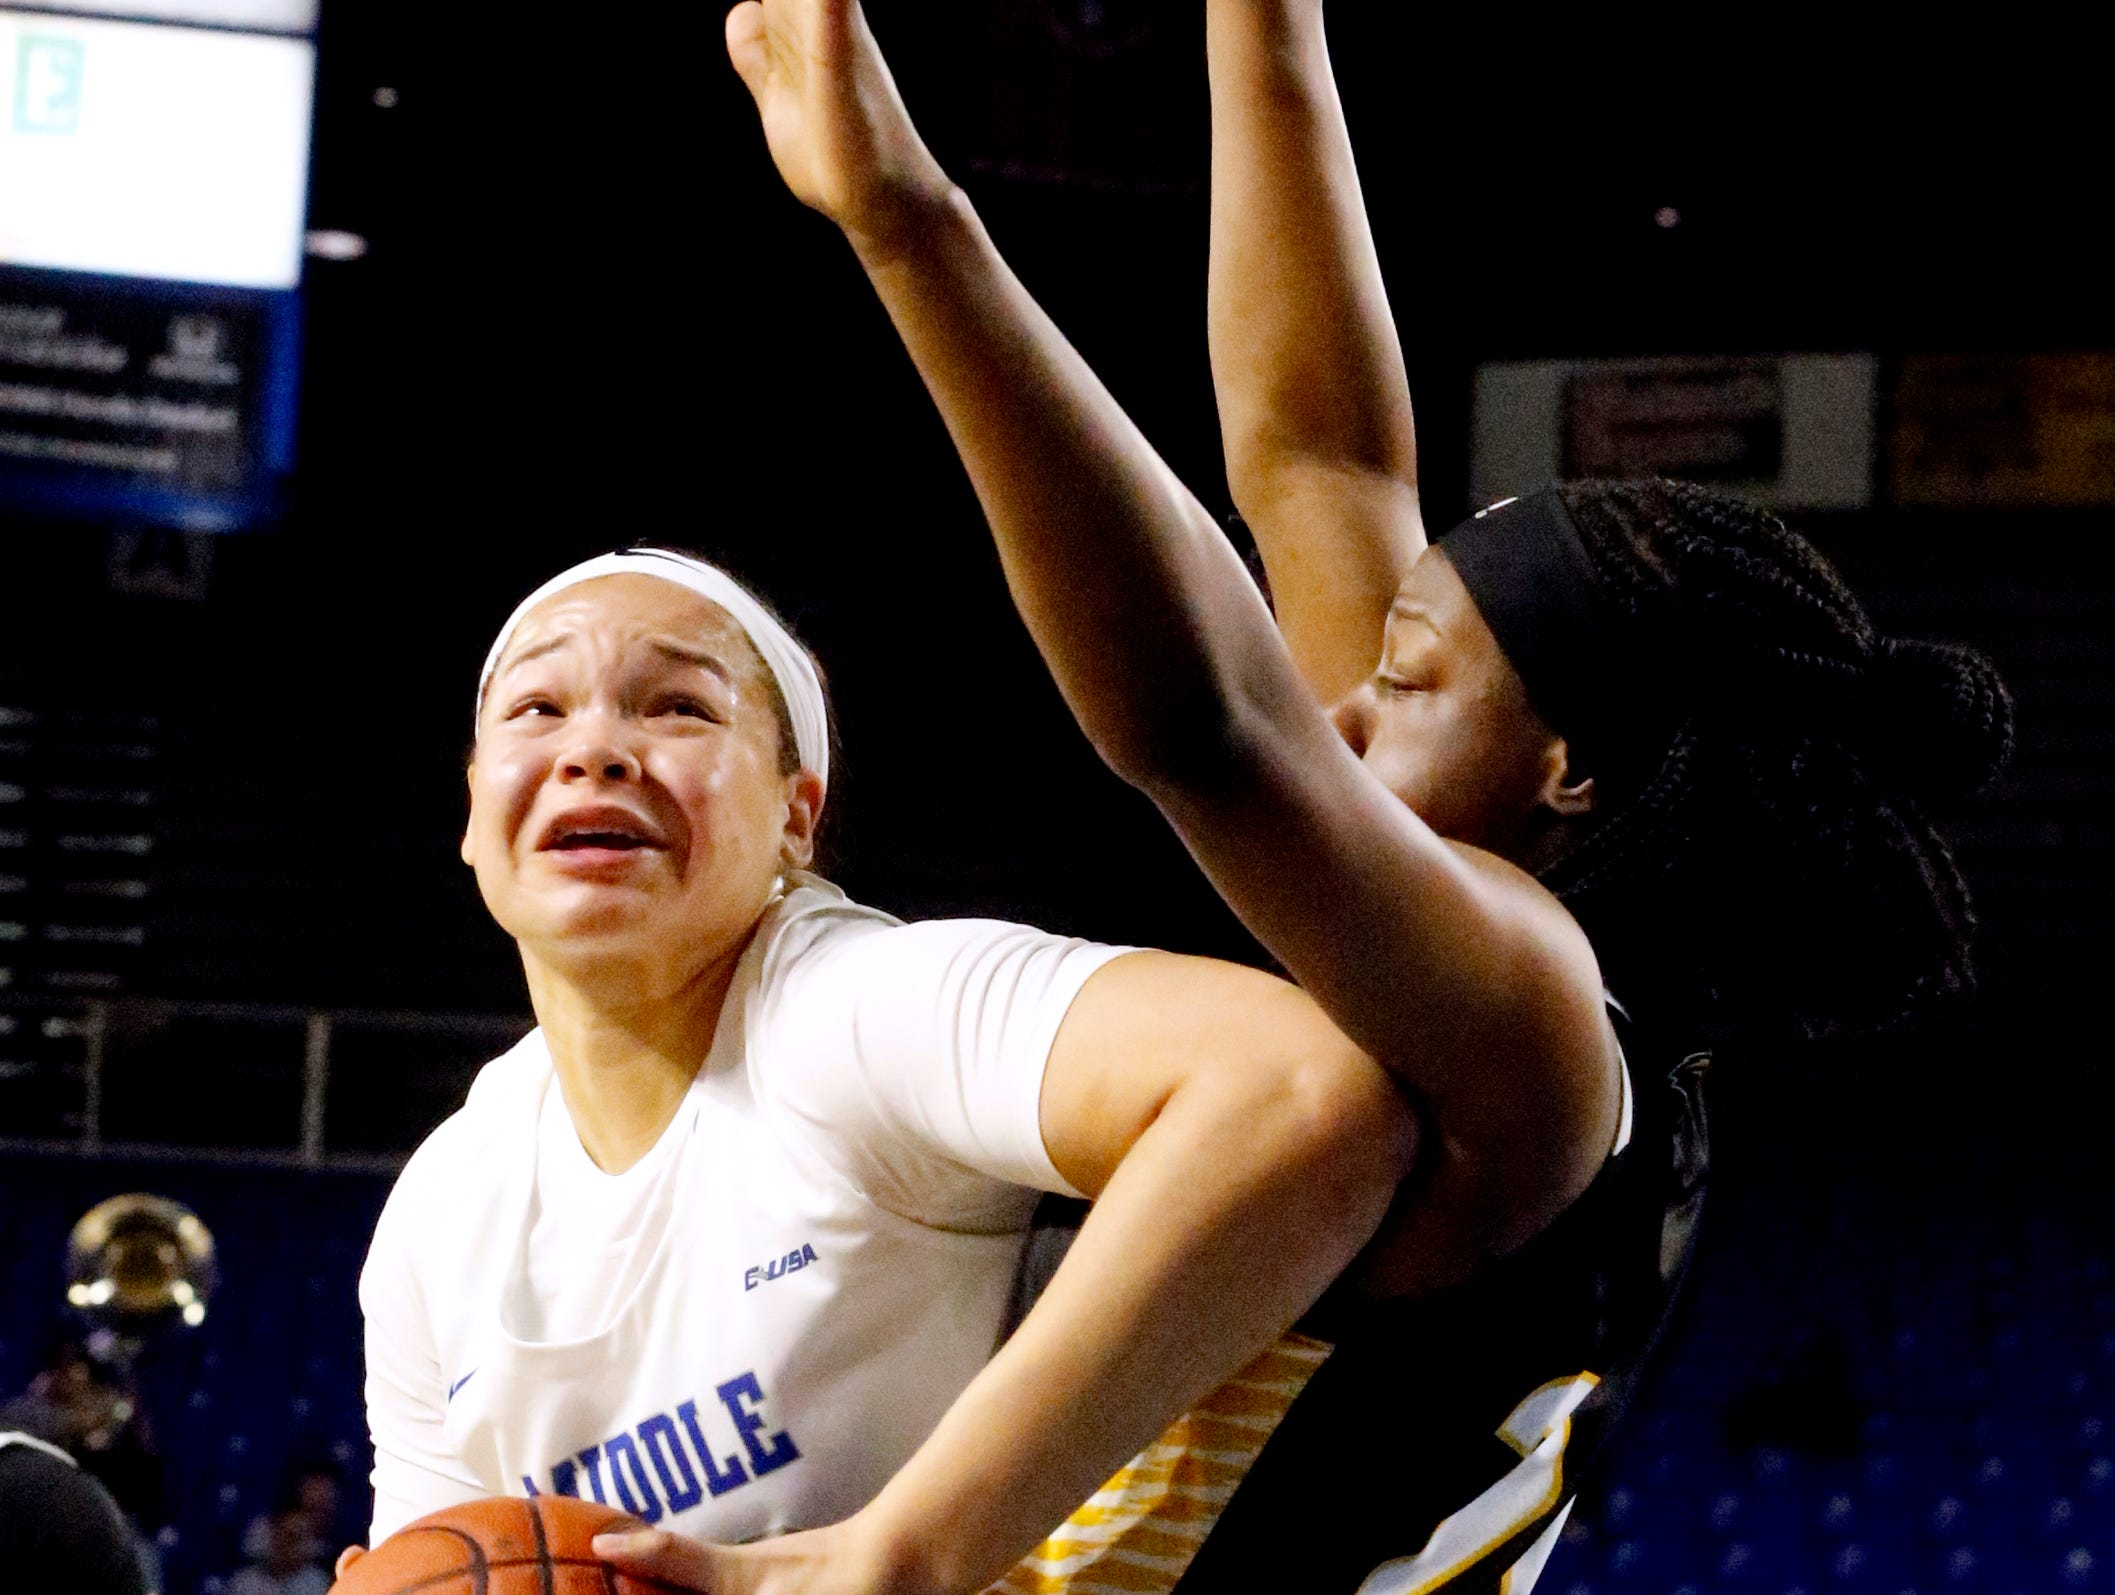 MTSU's forward Alex Johnson (00) tries to shoot the ball as she is guarded by Southern Miss' Kennedy Gavin (24) on Thursday Jan. 10, 2019.